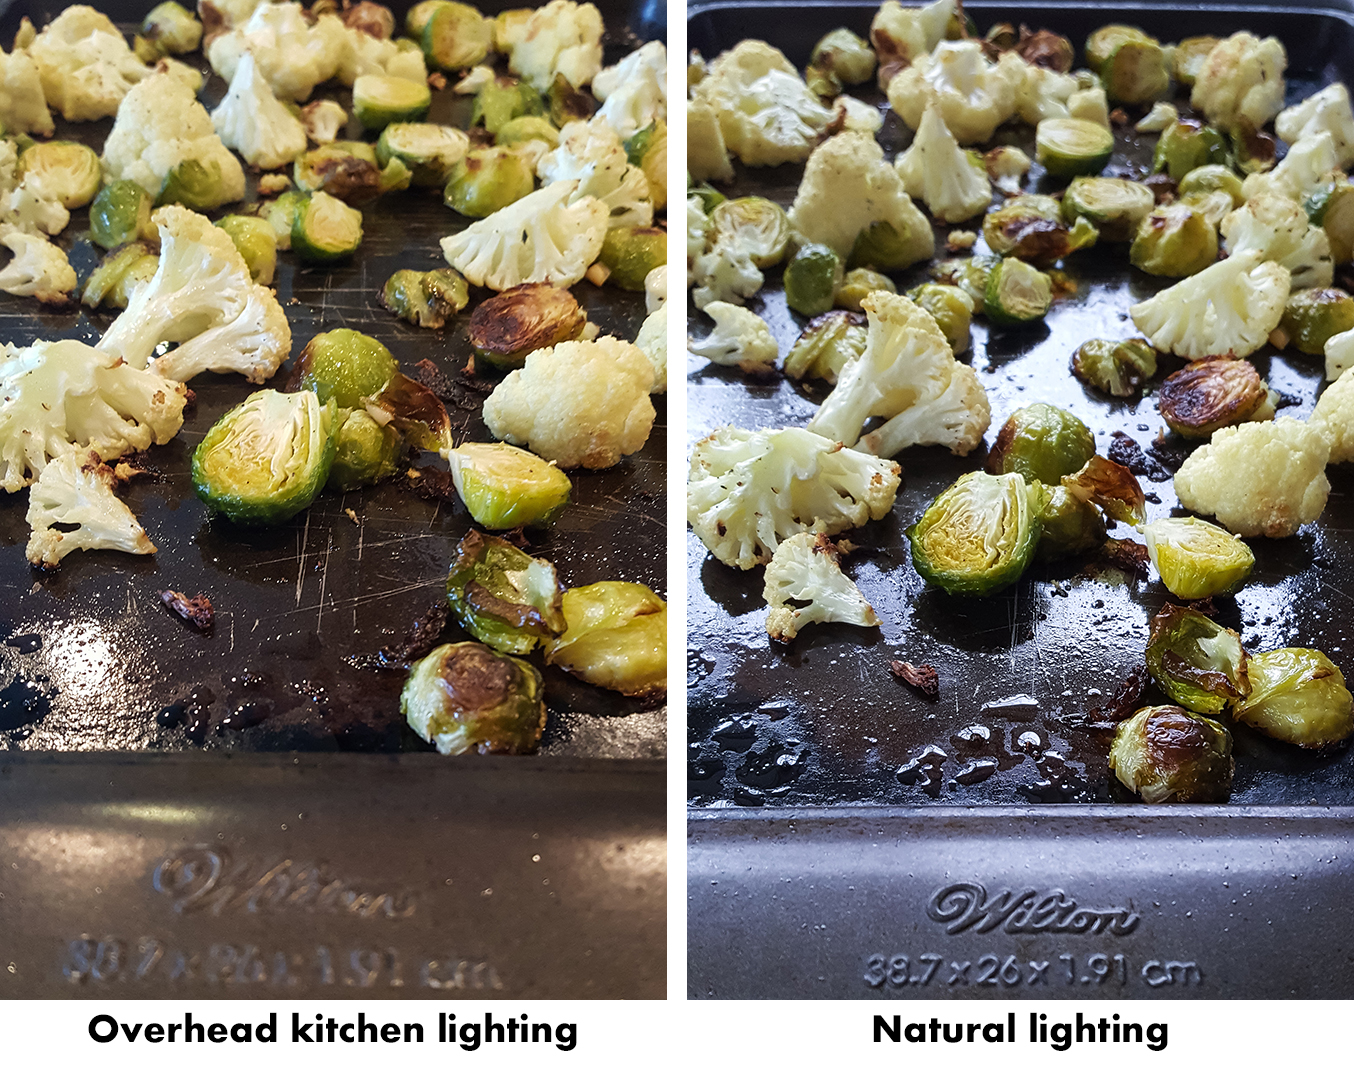 How to Take Better Photos for Your Blog With Your Phone - Overhead kitchen lighting vs. natural lighting. | https://www.roseclearfield.com